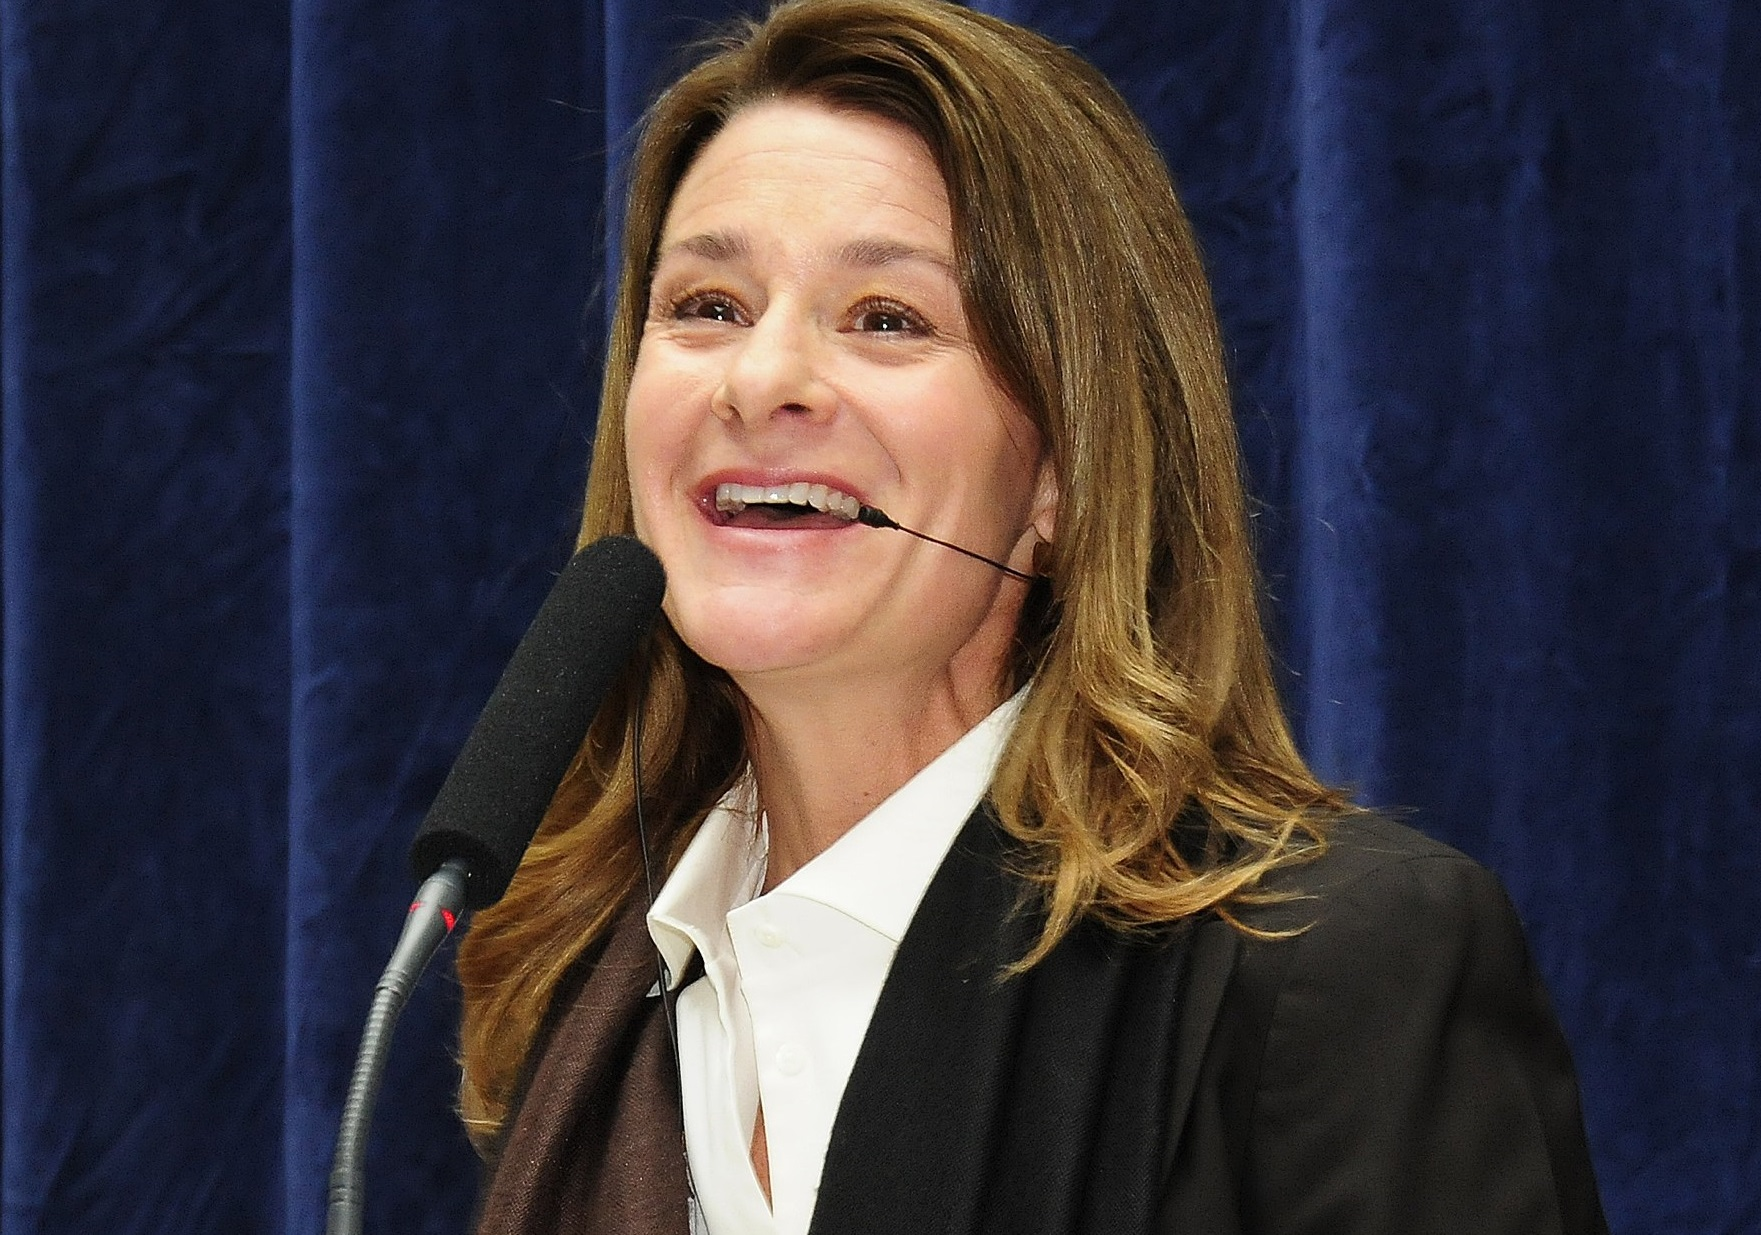 You Can Invest Like Melinda Gates Too